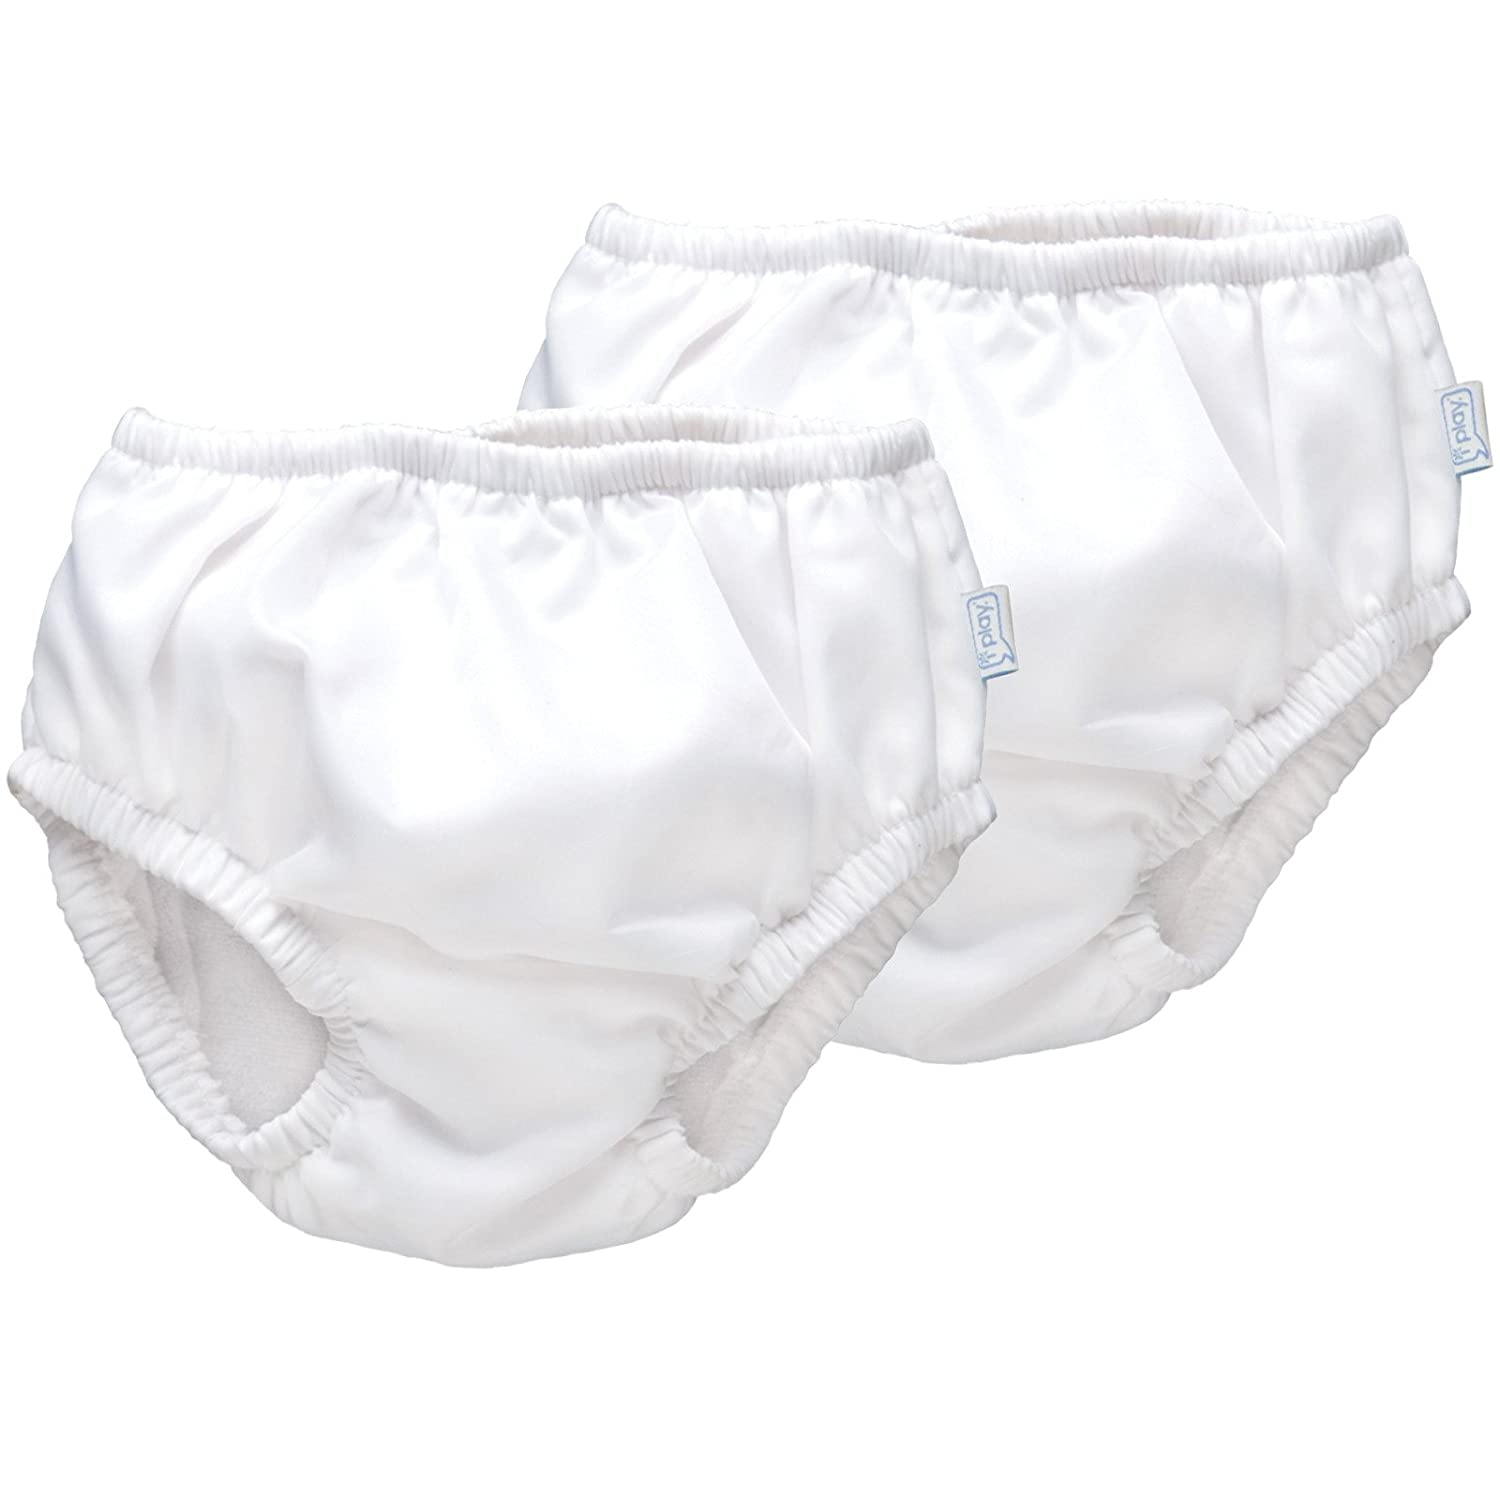 iPlay Ultimate Swim Diaper - White, (12 Months) by i play.   B00A30E4N6